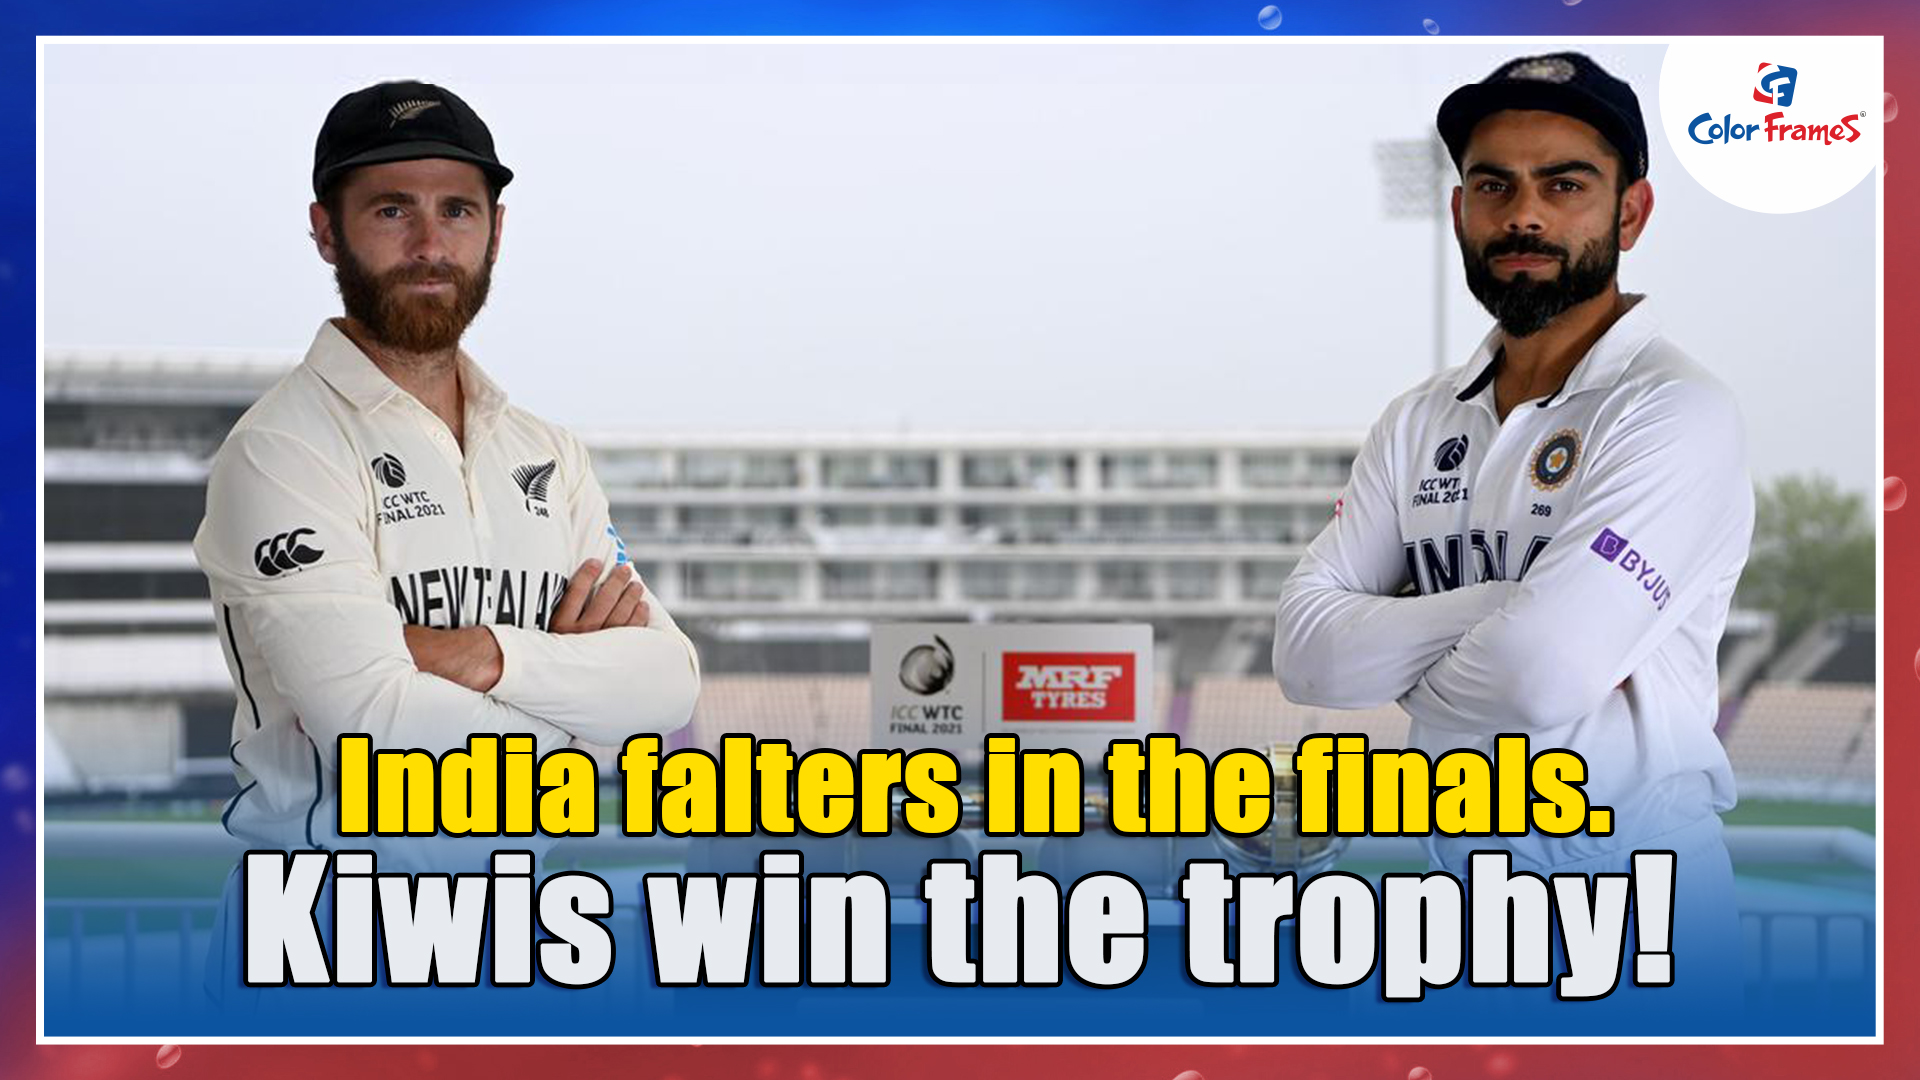 India falters in the finals. Kiwis win the trophy!